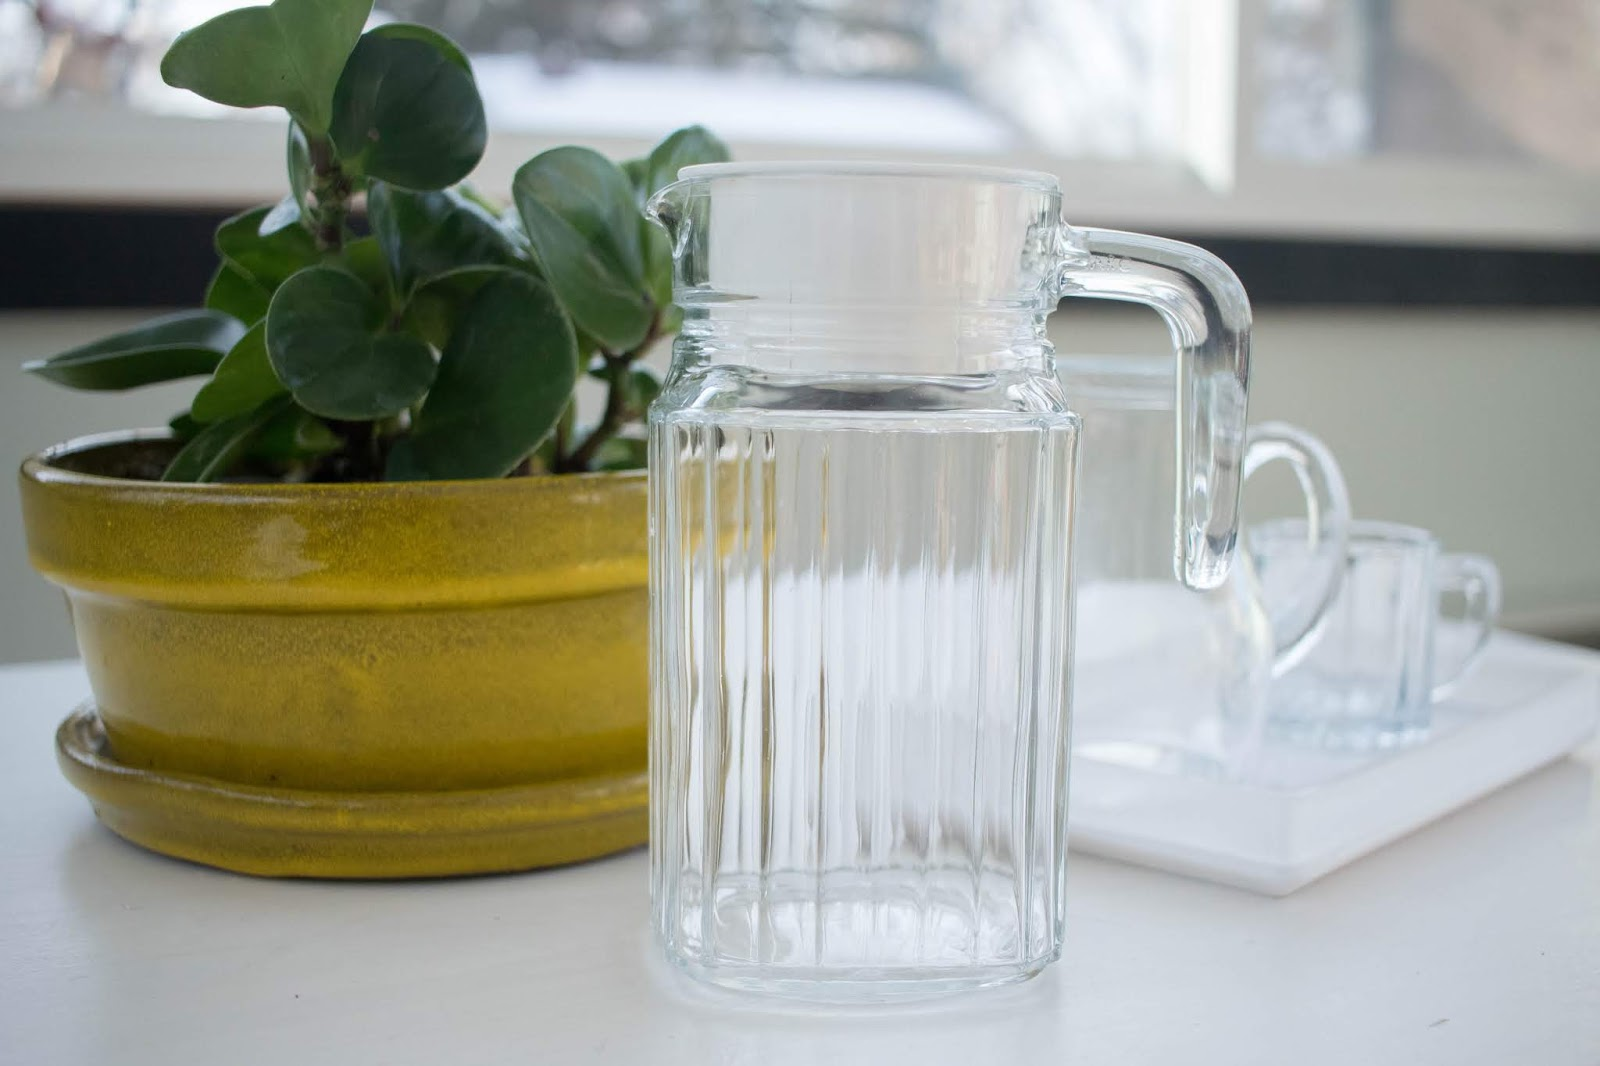 Making water available - pitcher options for a Montessori home.